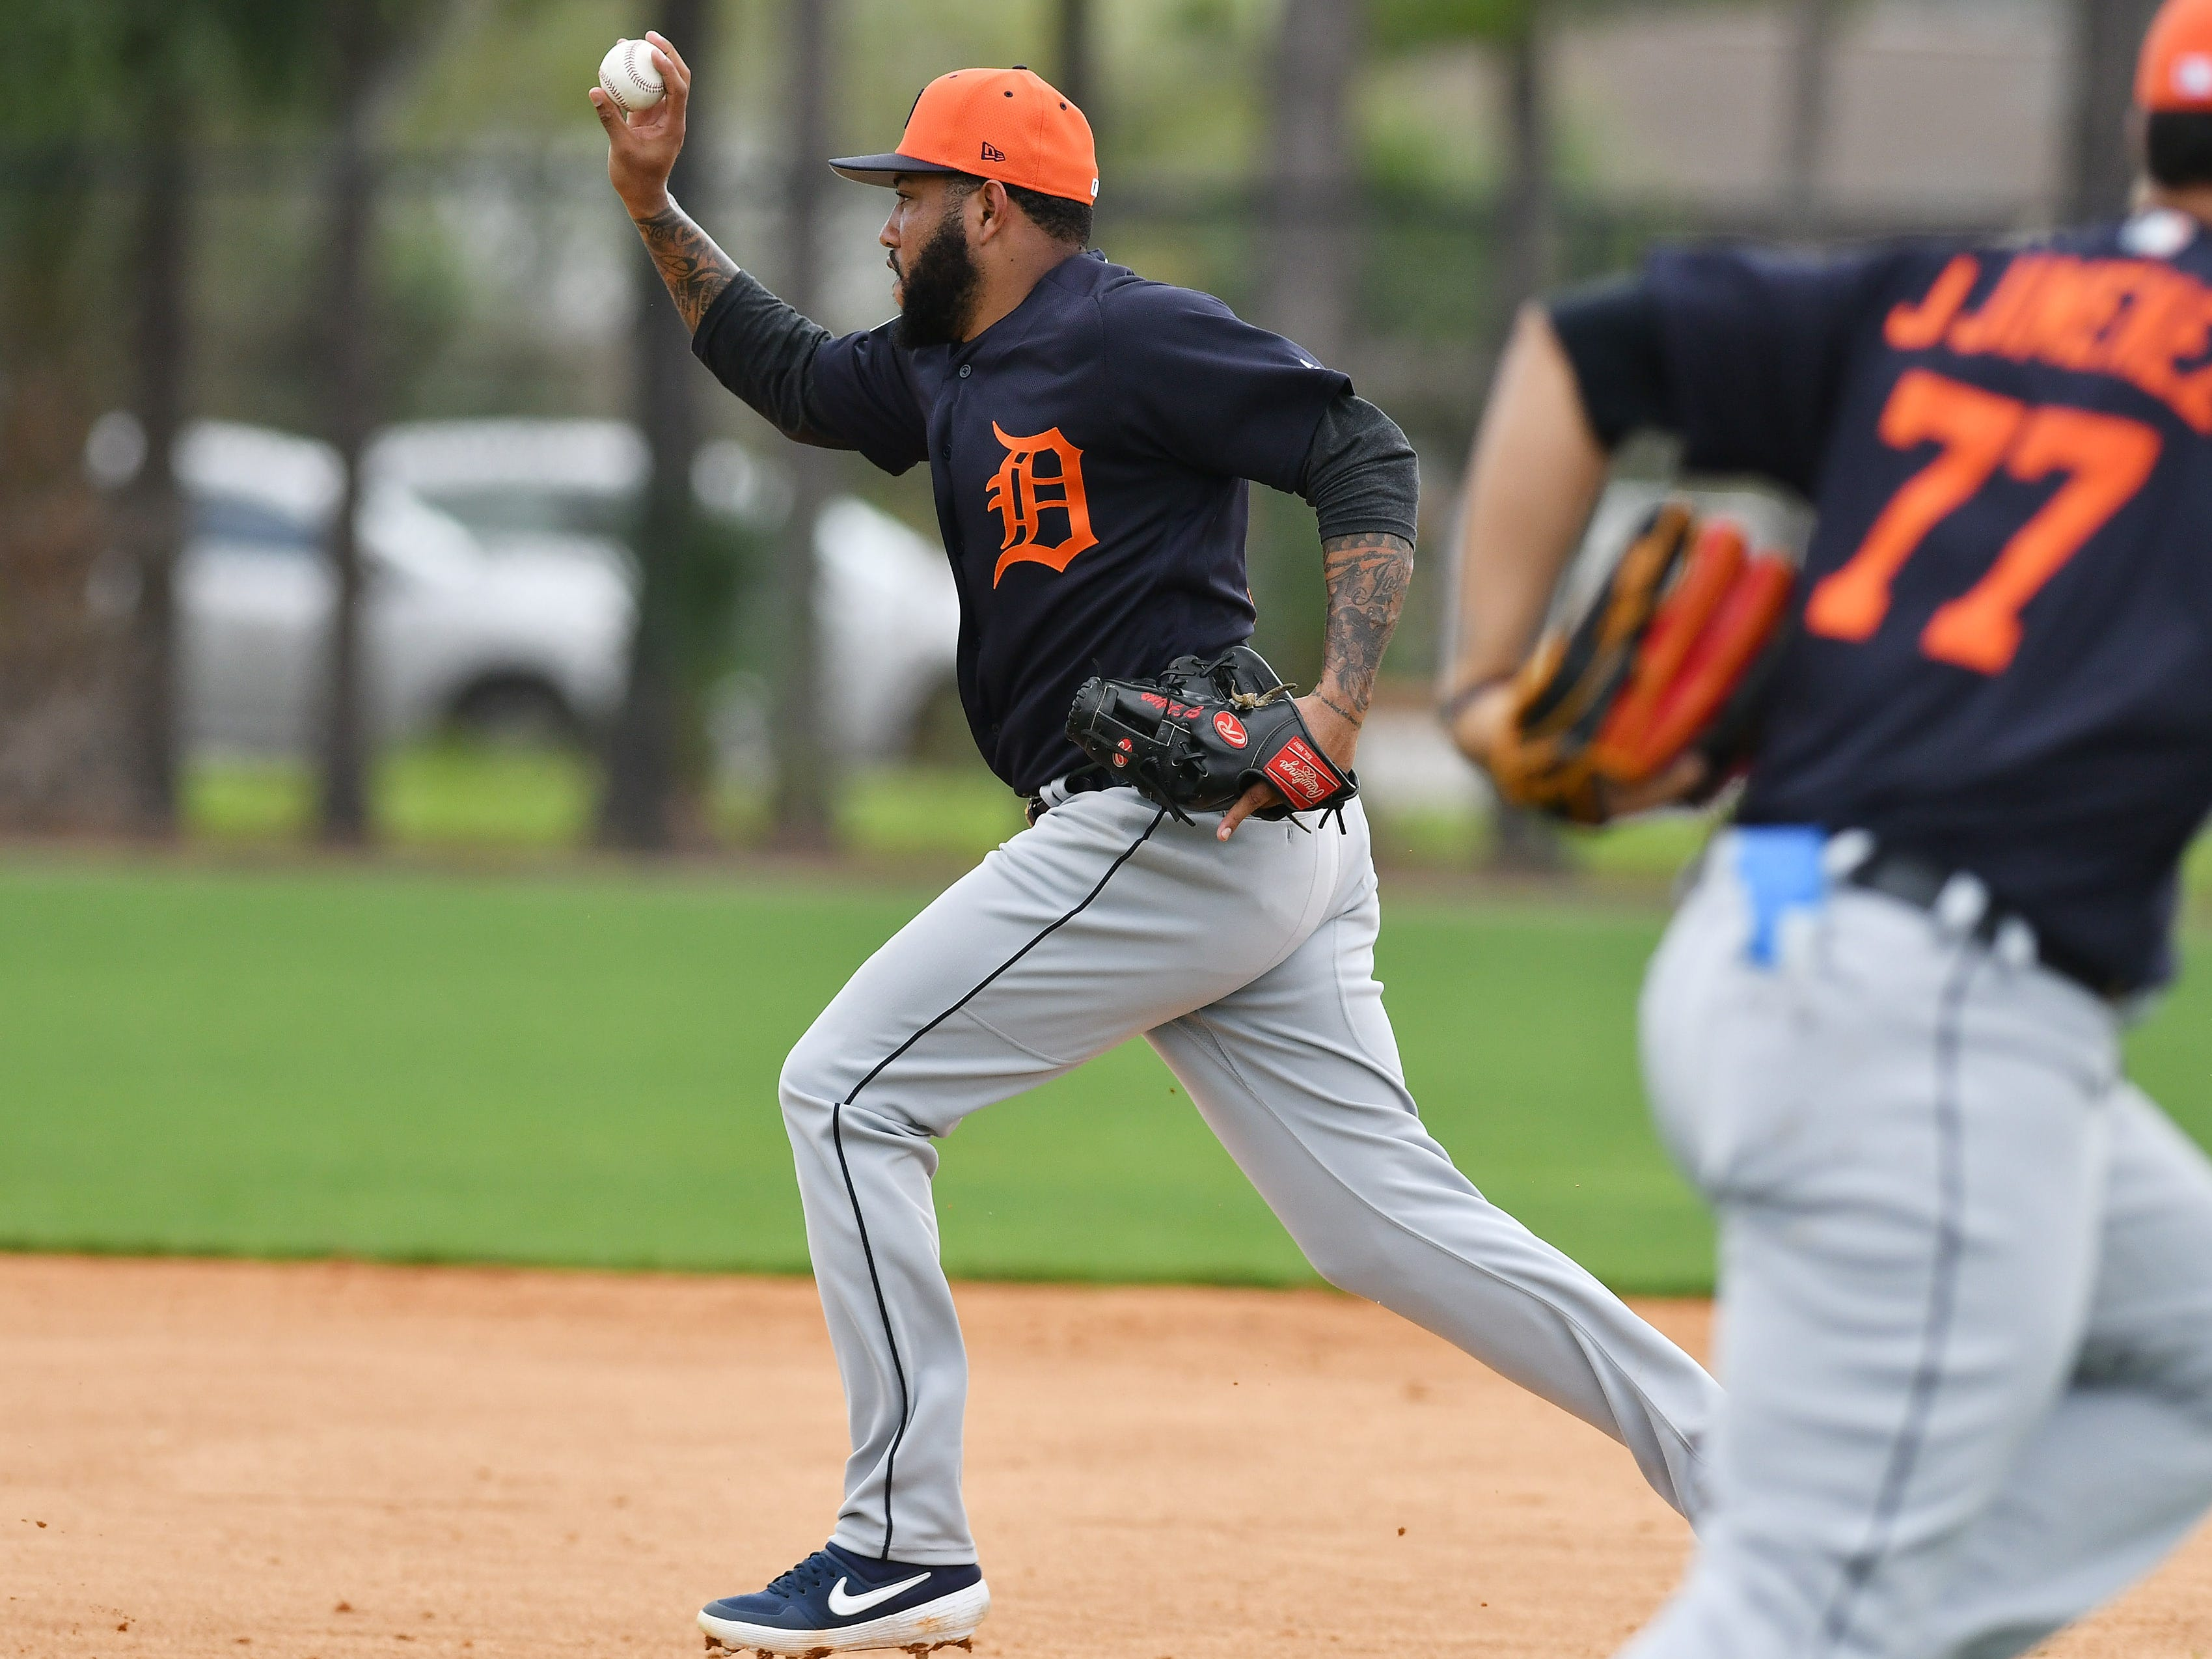 Tigers infielder Ronny Rodriguez runs down a base runner during a drill.